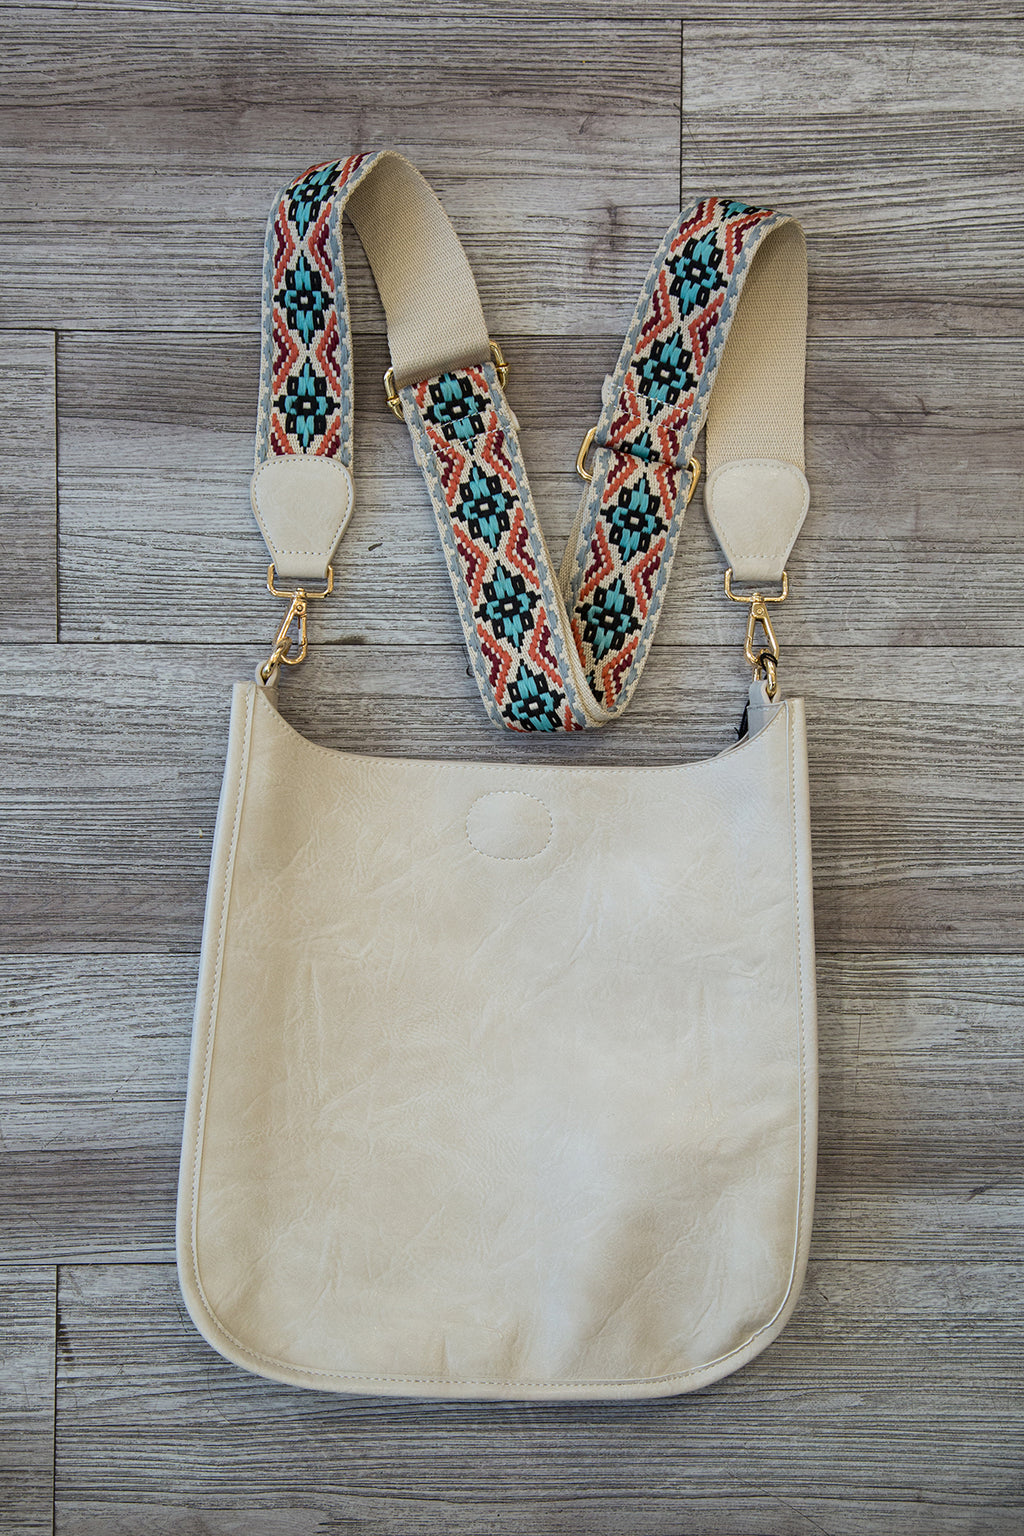 Vegan Leather Crossbody with Strap